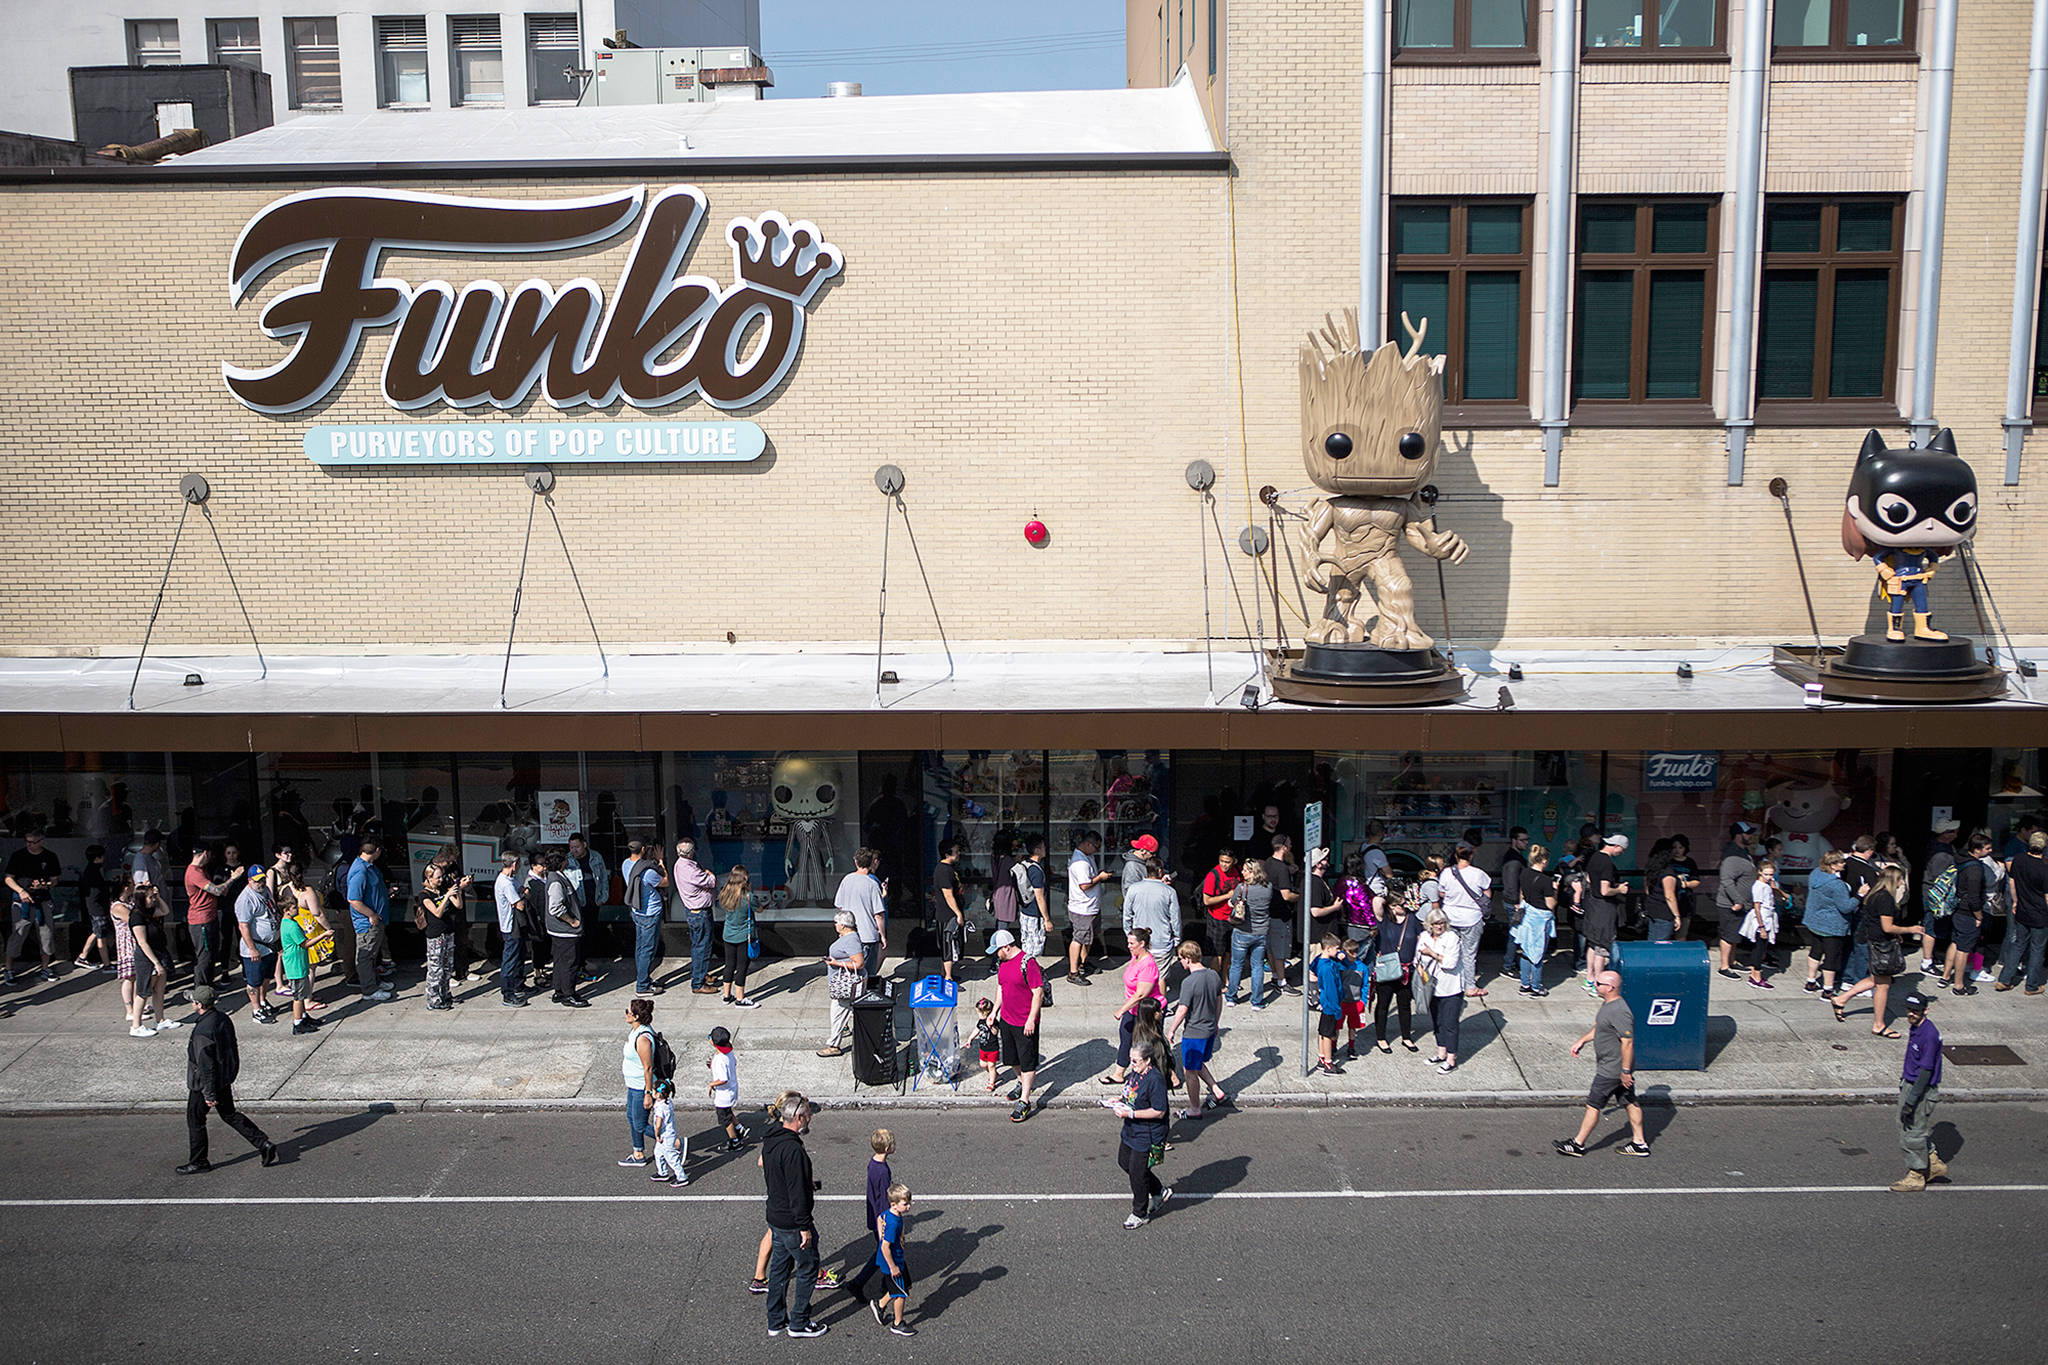 Olivia Vanni / The Herald                                 People line up to enter the Funko store in Everett in 2018.